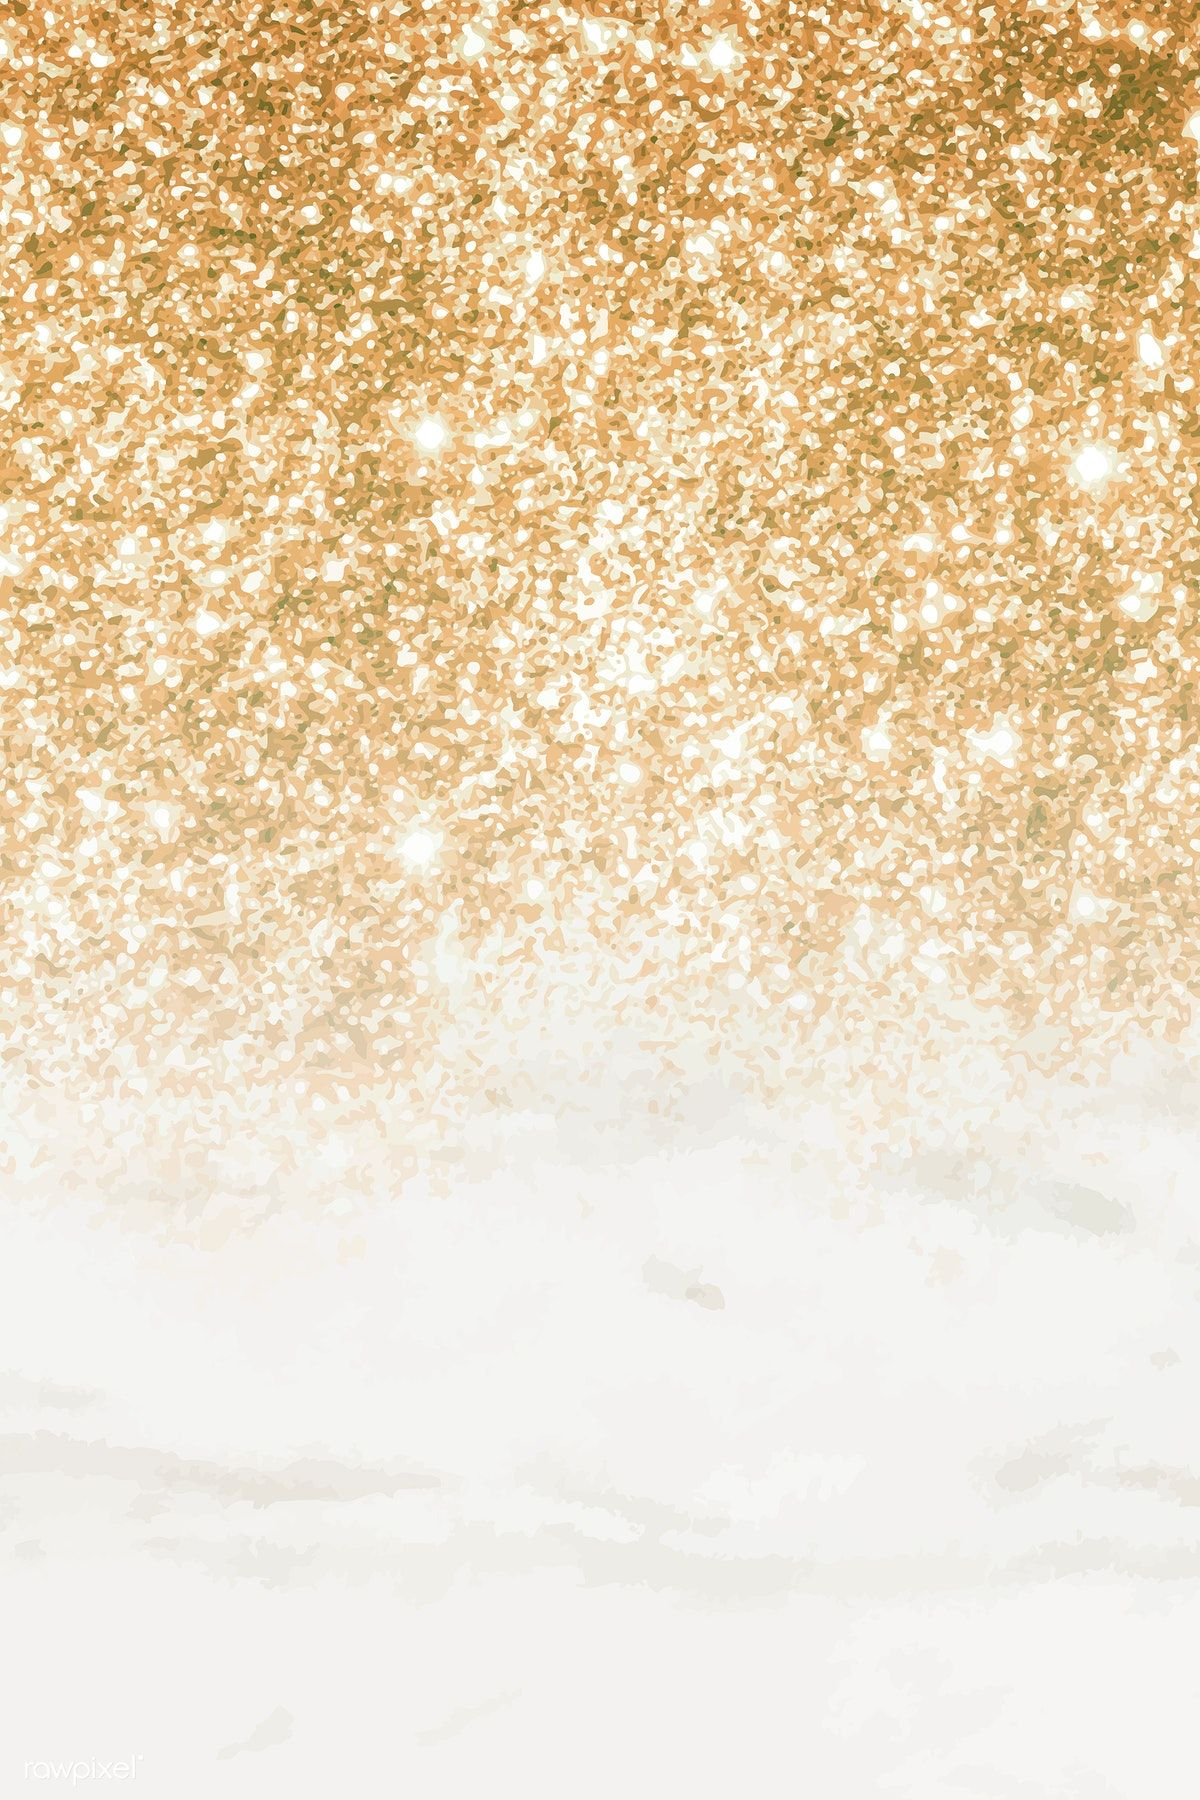 Download premium vector of Gold glittery pattern on white marble background vector by Ning about white and gold, white and gold background, marble glitter, Gold and white background, and glitter and marble 938033